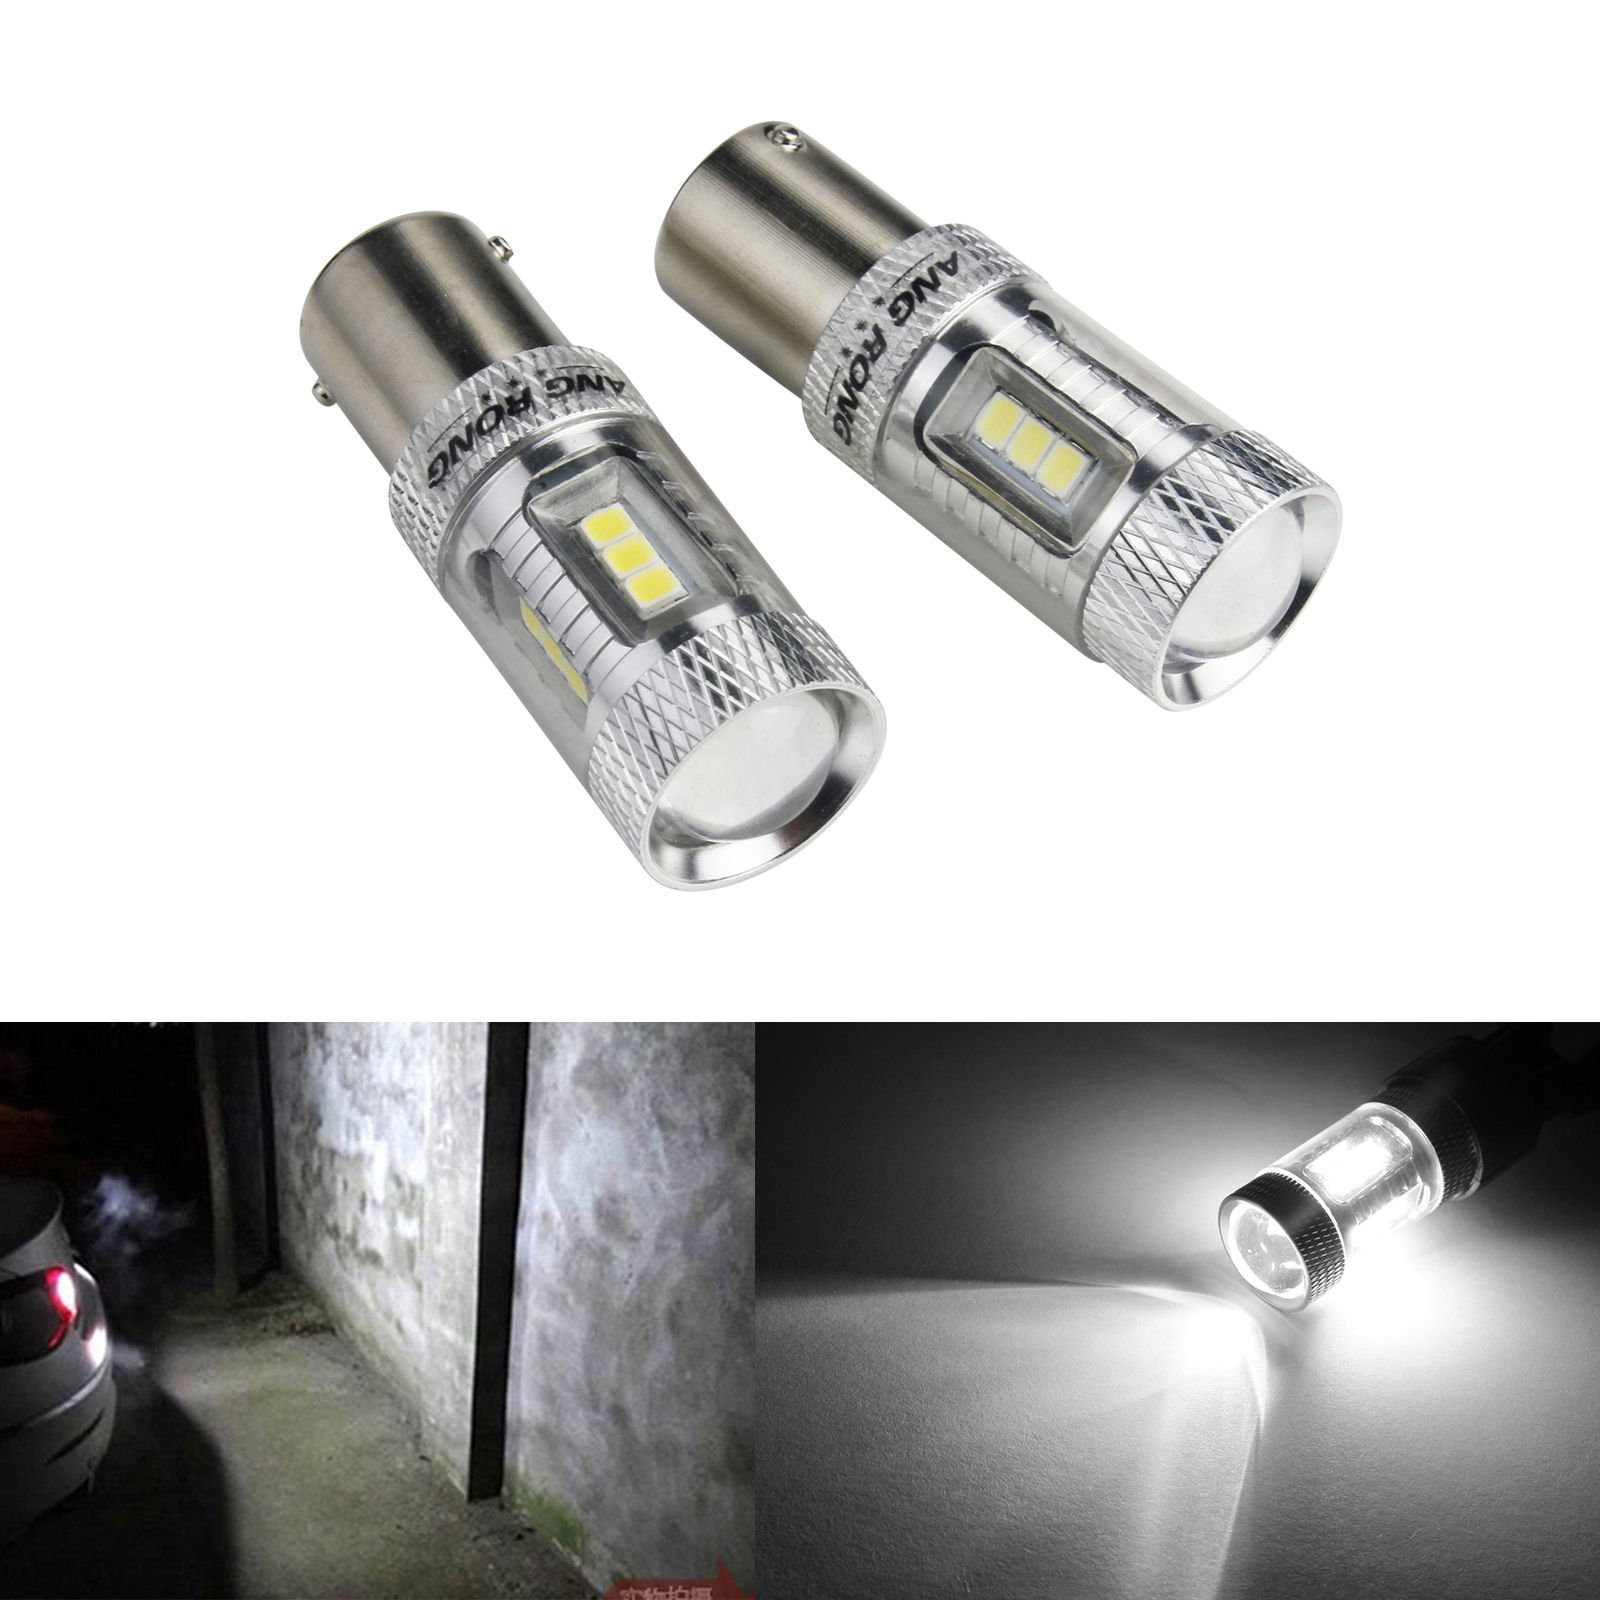 2x Super WHITE BRIGHT 1156 7506 P21W LED DRL Headlight Upgrade BULBS BA15s